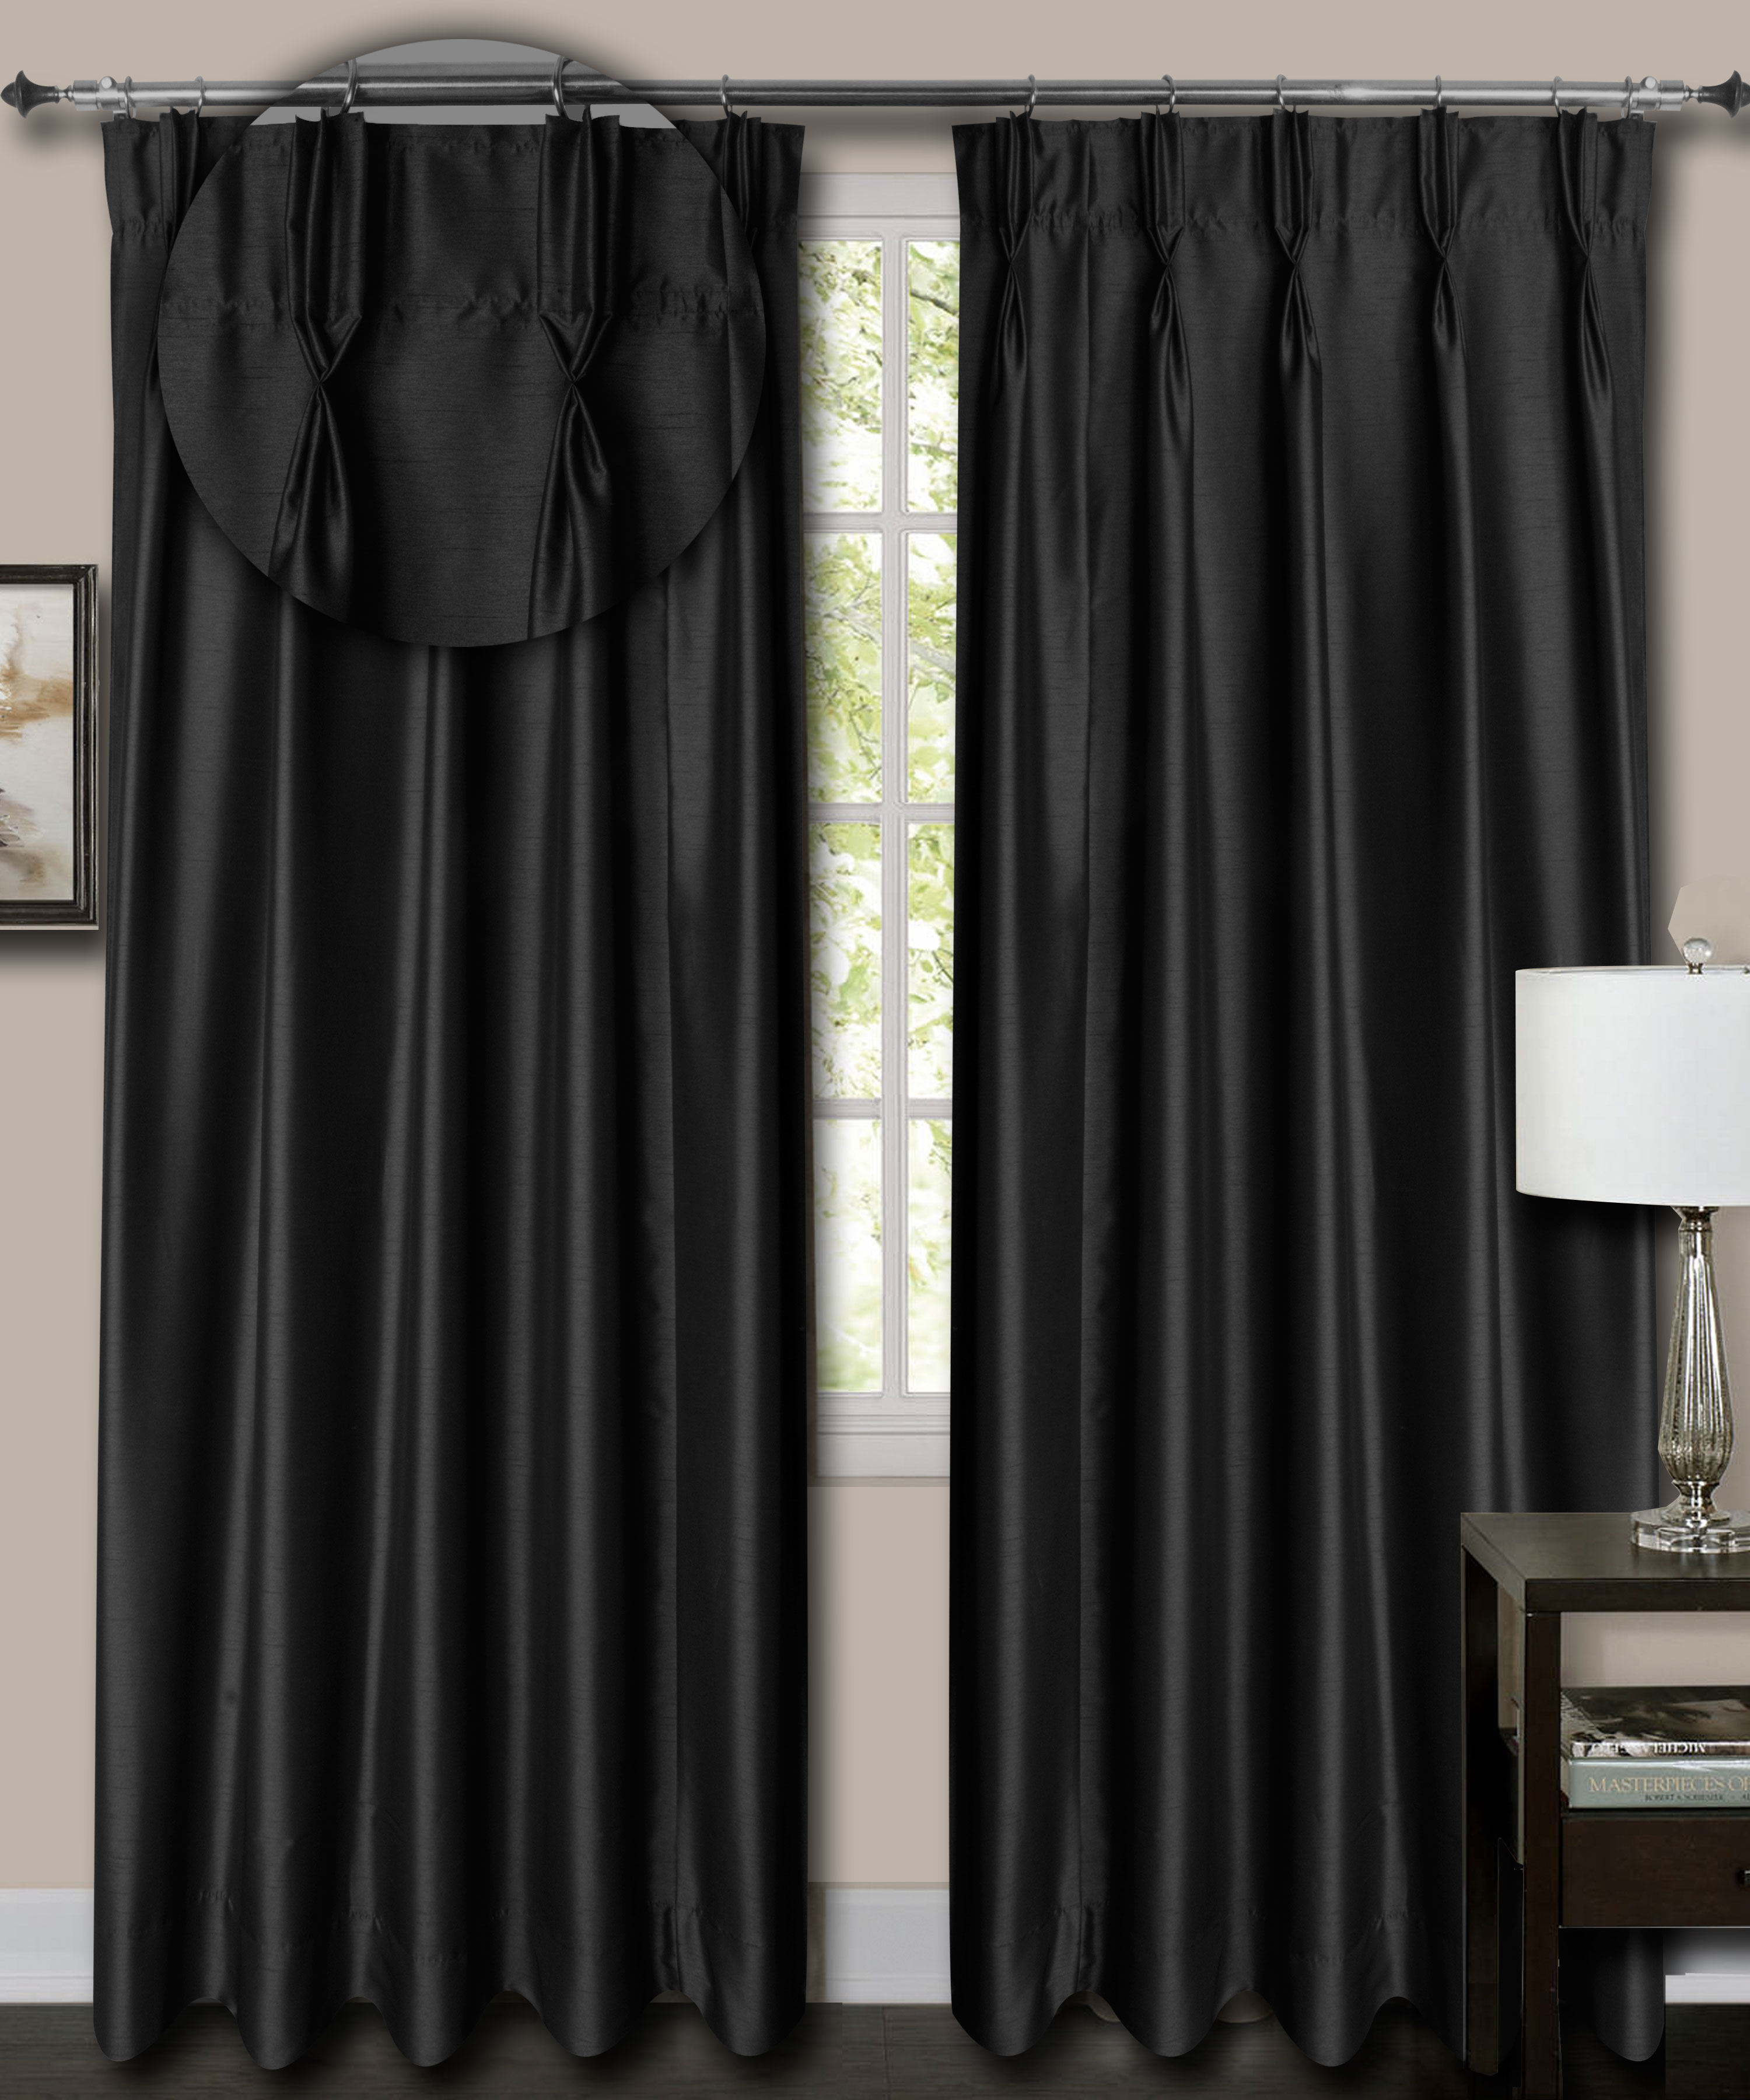 "French Pleat Top Black Faux Silk Dupioni Curtains. (39"" Wide, 10 Feet Long, Thick Lining)"